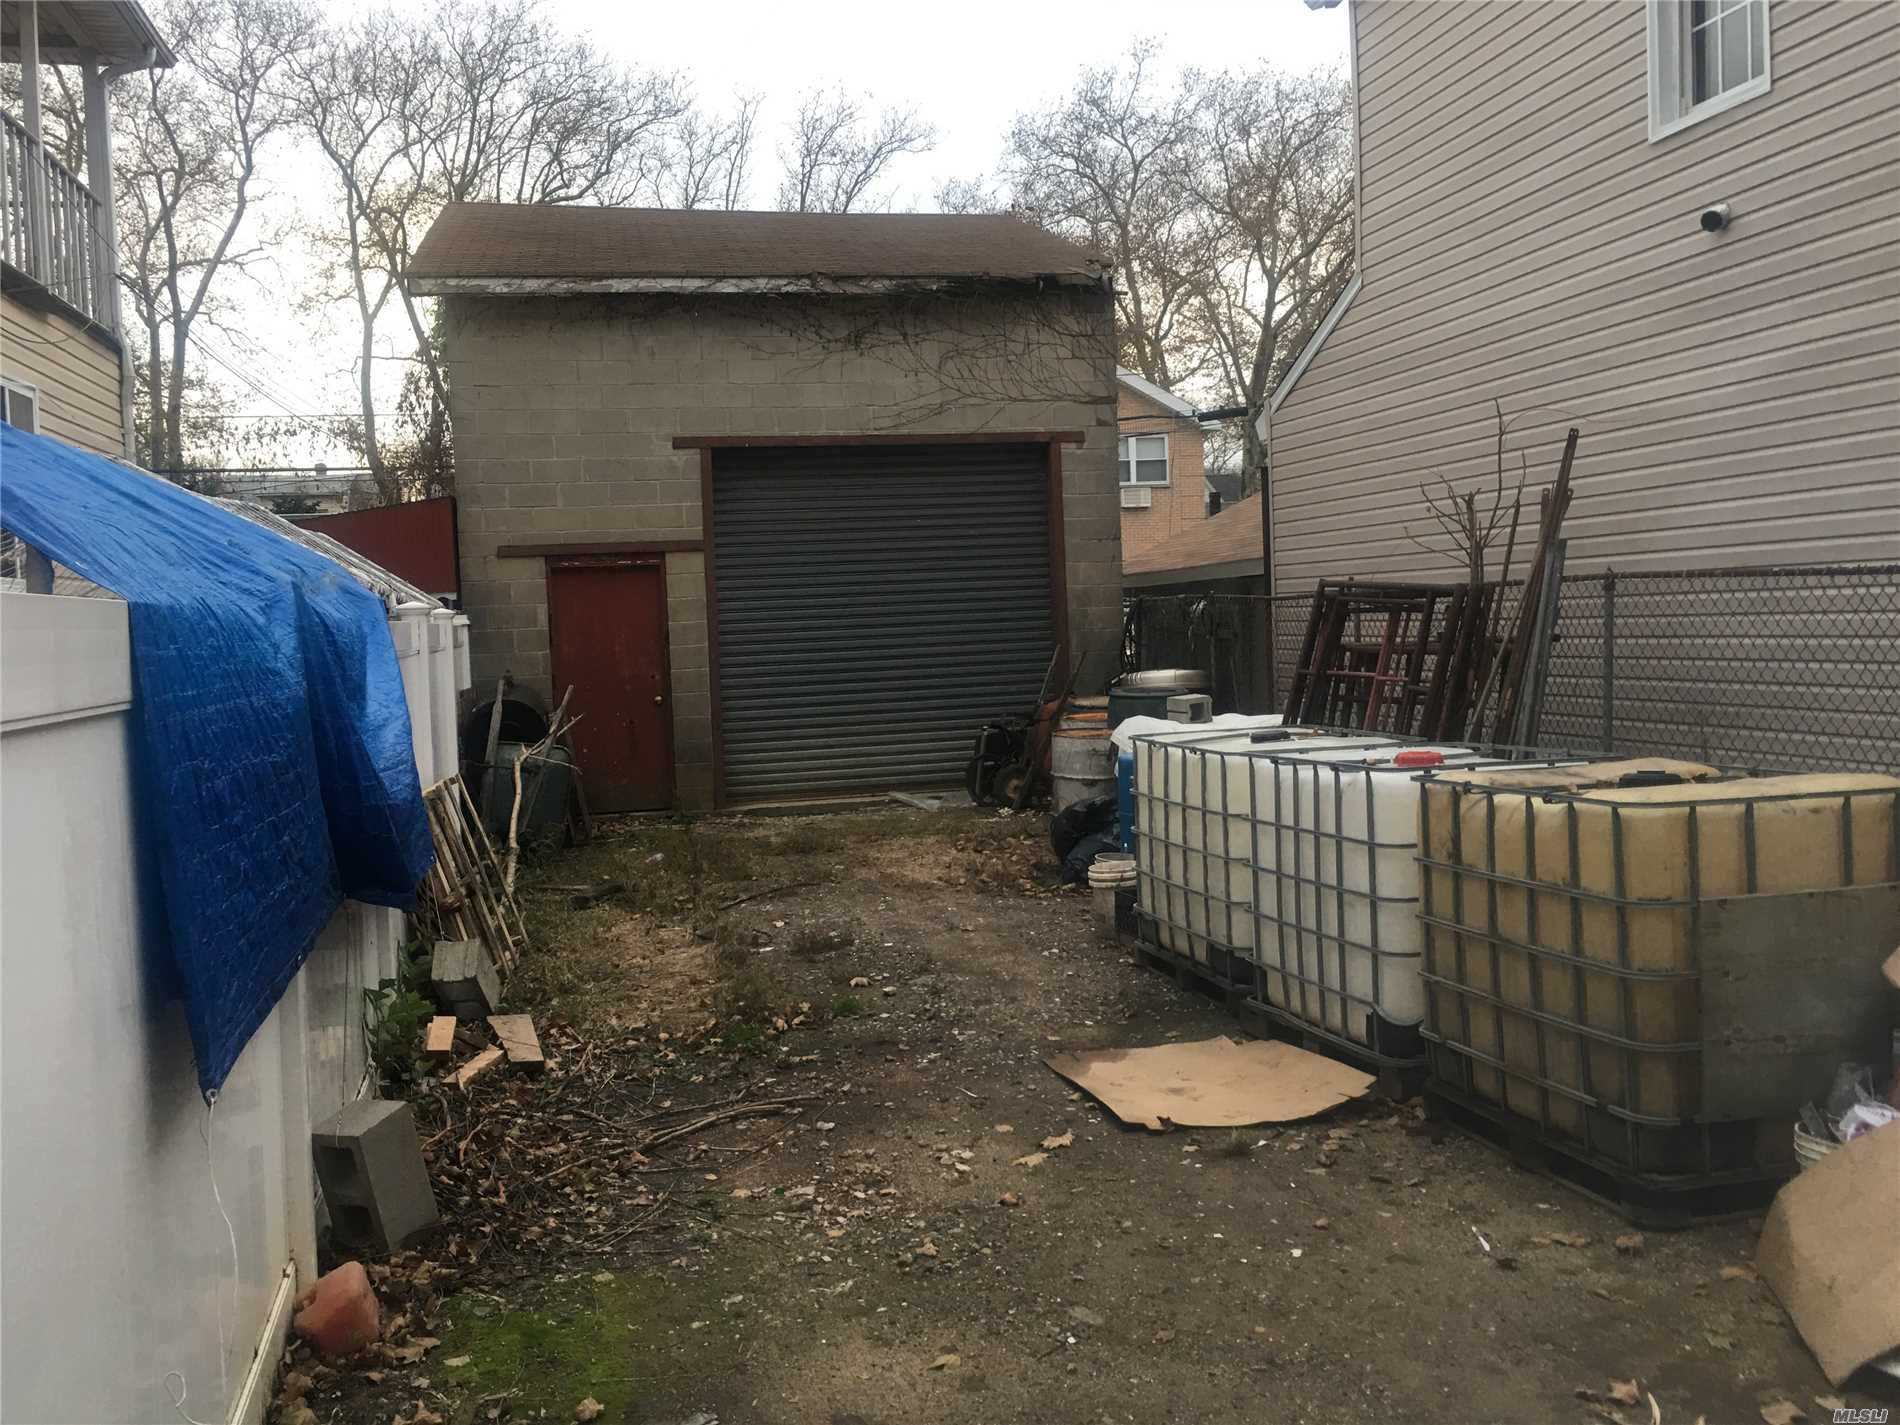 Vacant Parcel Available. R3-2 Zoning Prime Location. Minutes From Jfk, Close To Shopping, Schools, Transpotatiom And Places Of Worship. Will Not Last!!!